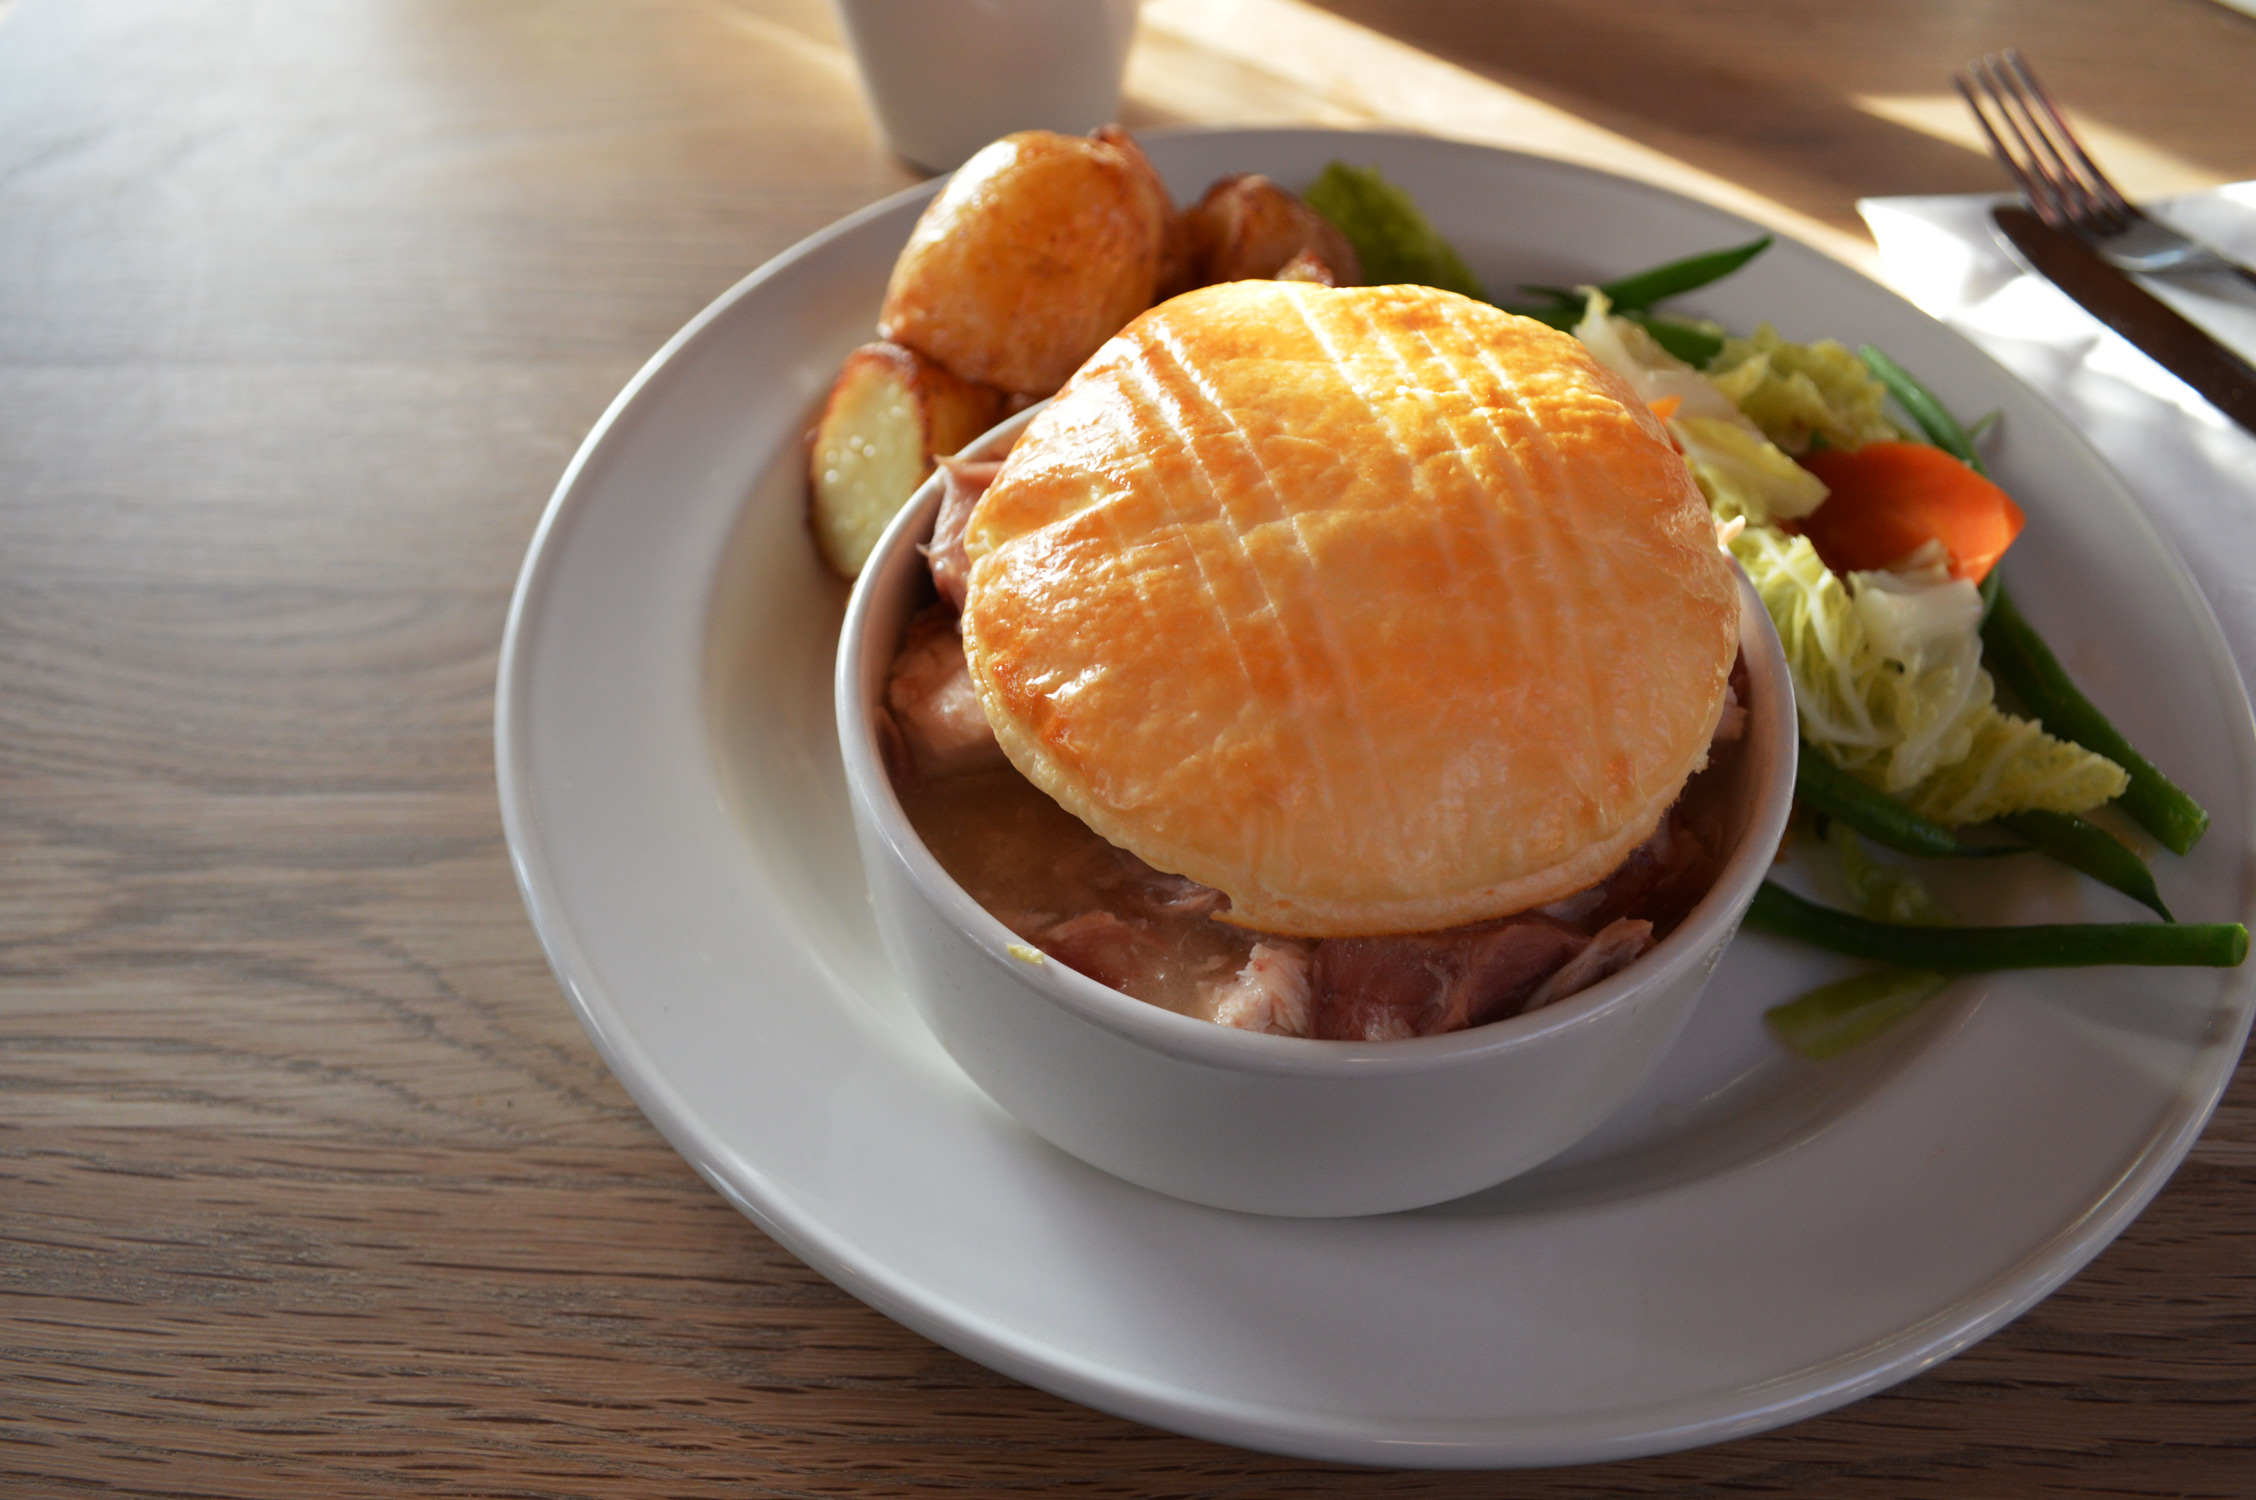 Chicken Pie at the Westonbirt, The National Arboretum restaurant and cafe- Creamy Cotswold Chicken & Ham Hock pie with Roasted New Potatoes and Sesonal Vegetable